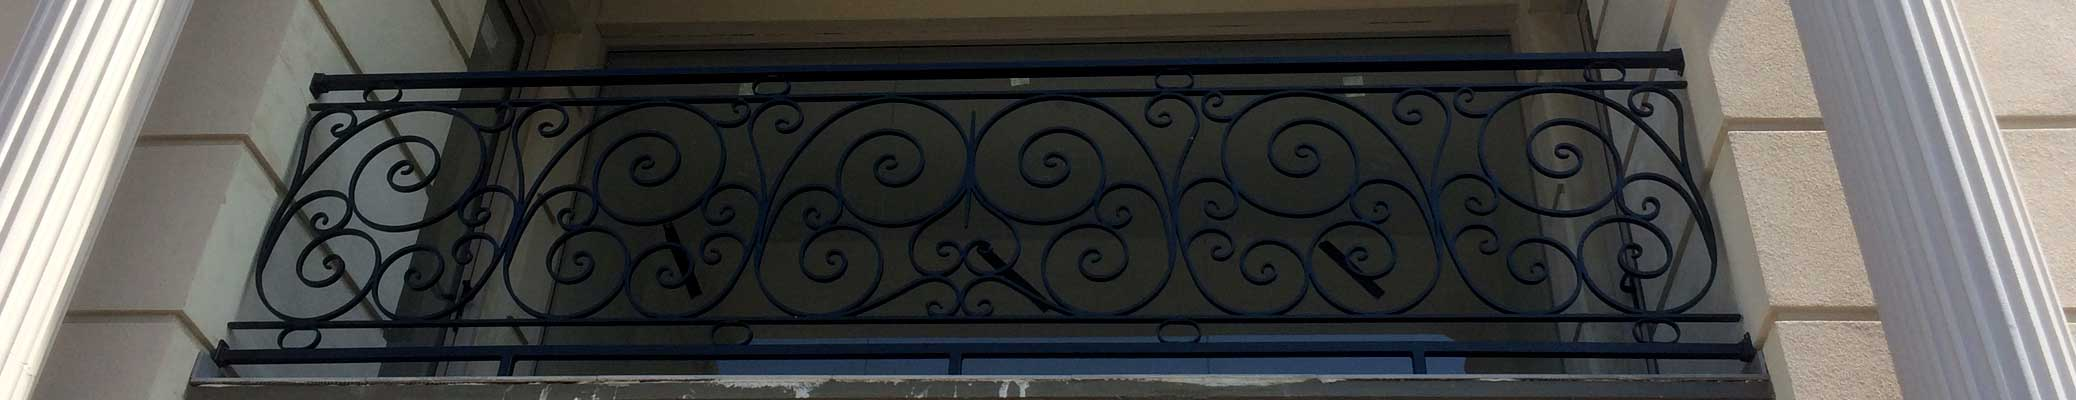 Amazing Wrought Iron